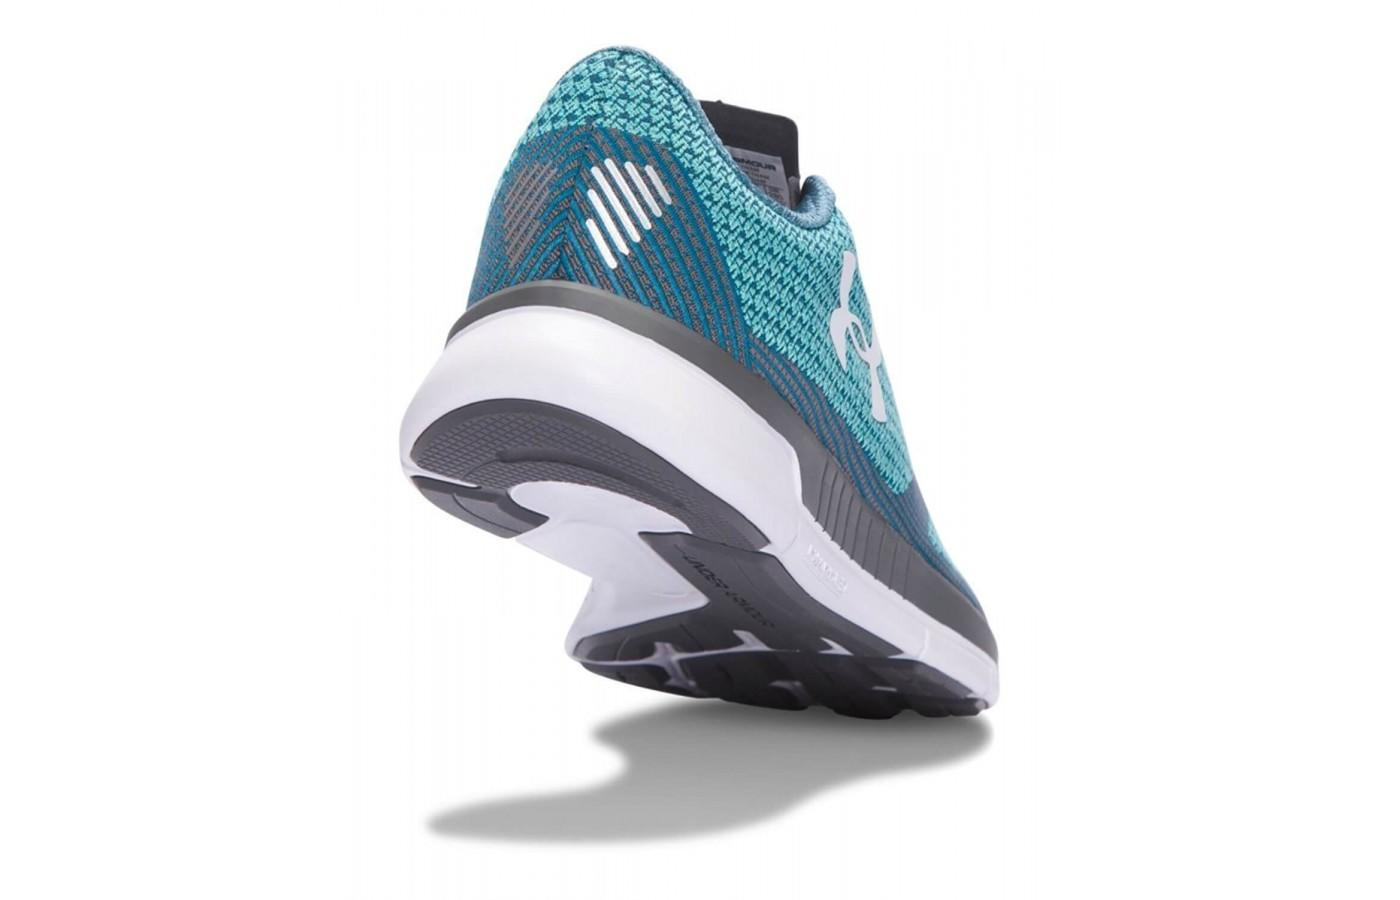 the outsole of the Under Armour Charged Lightning has strategically placed rubber pods to provide solid traction